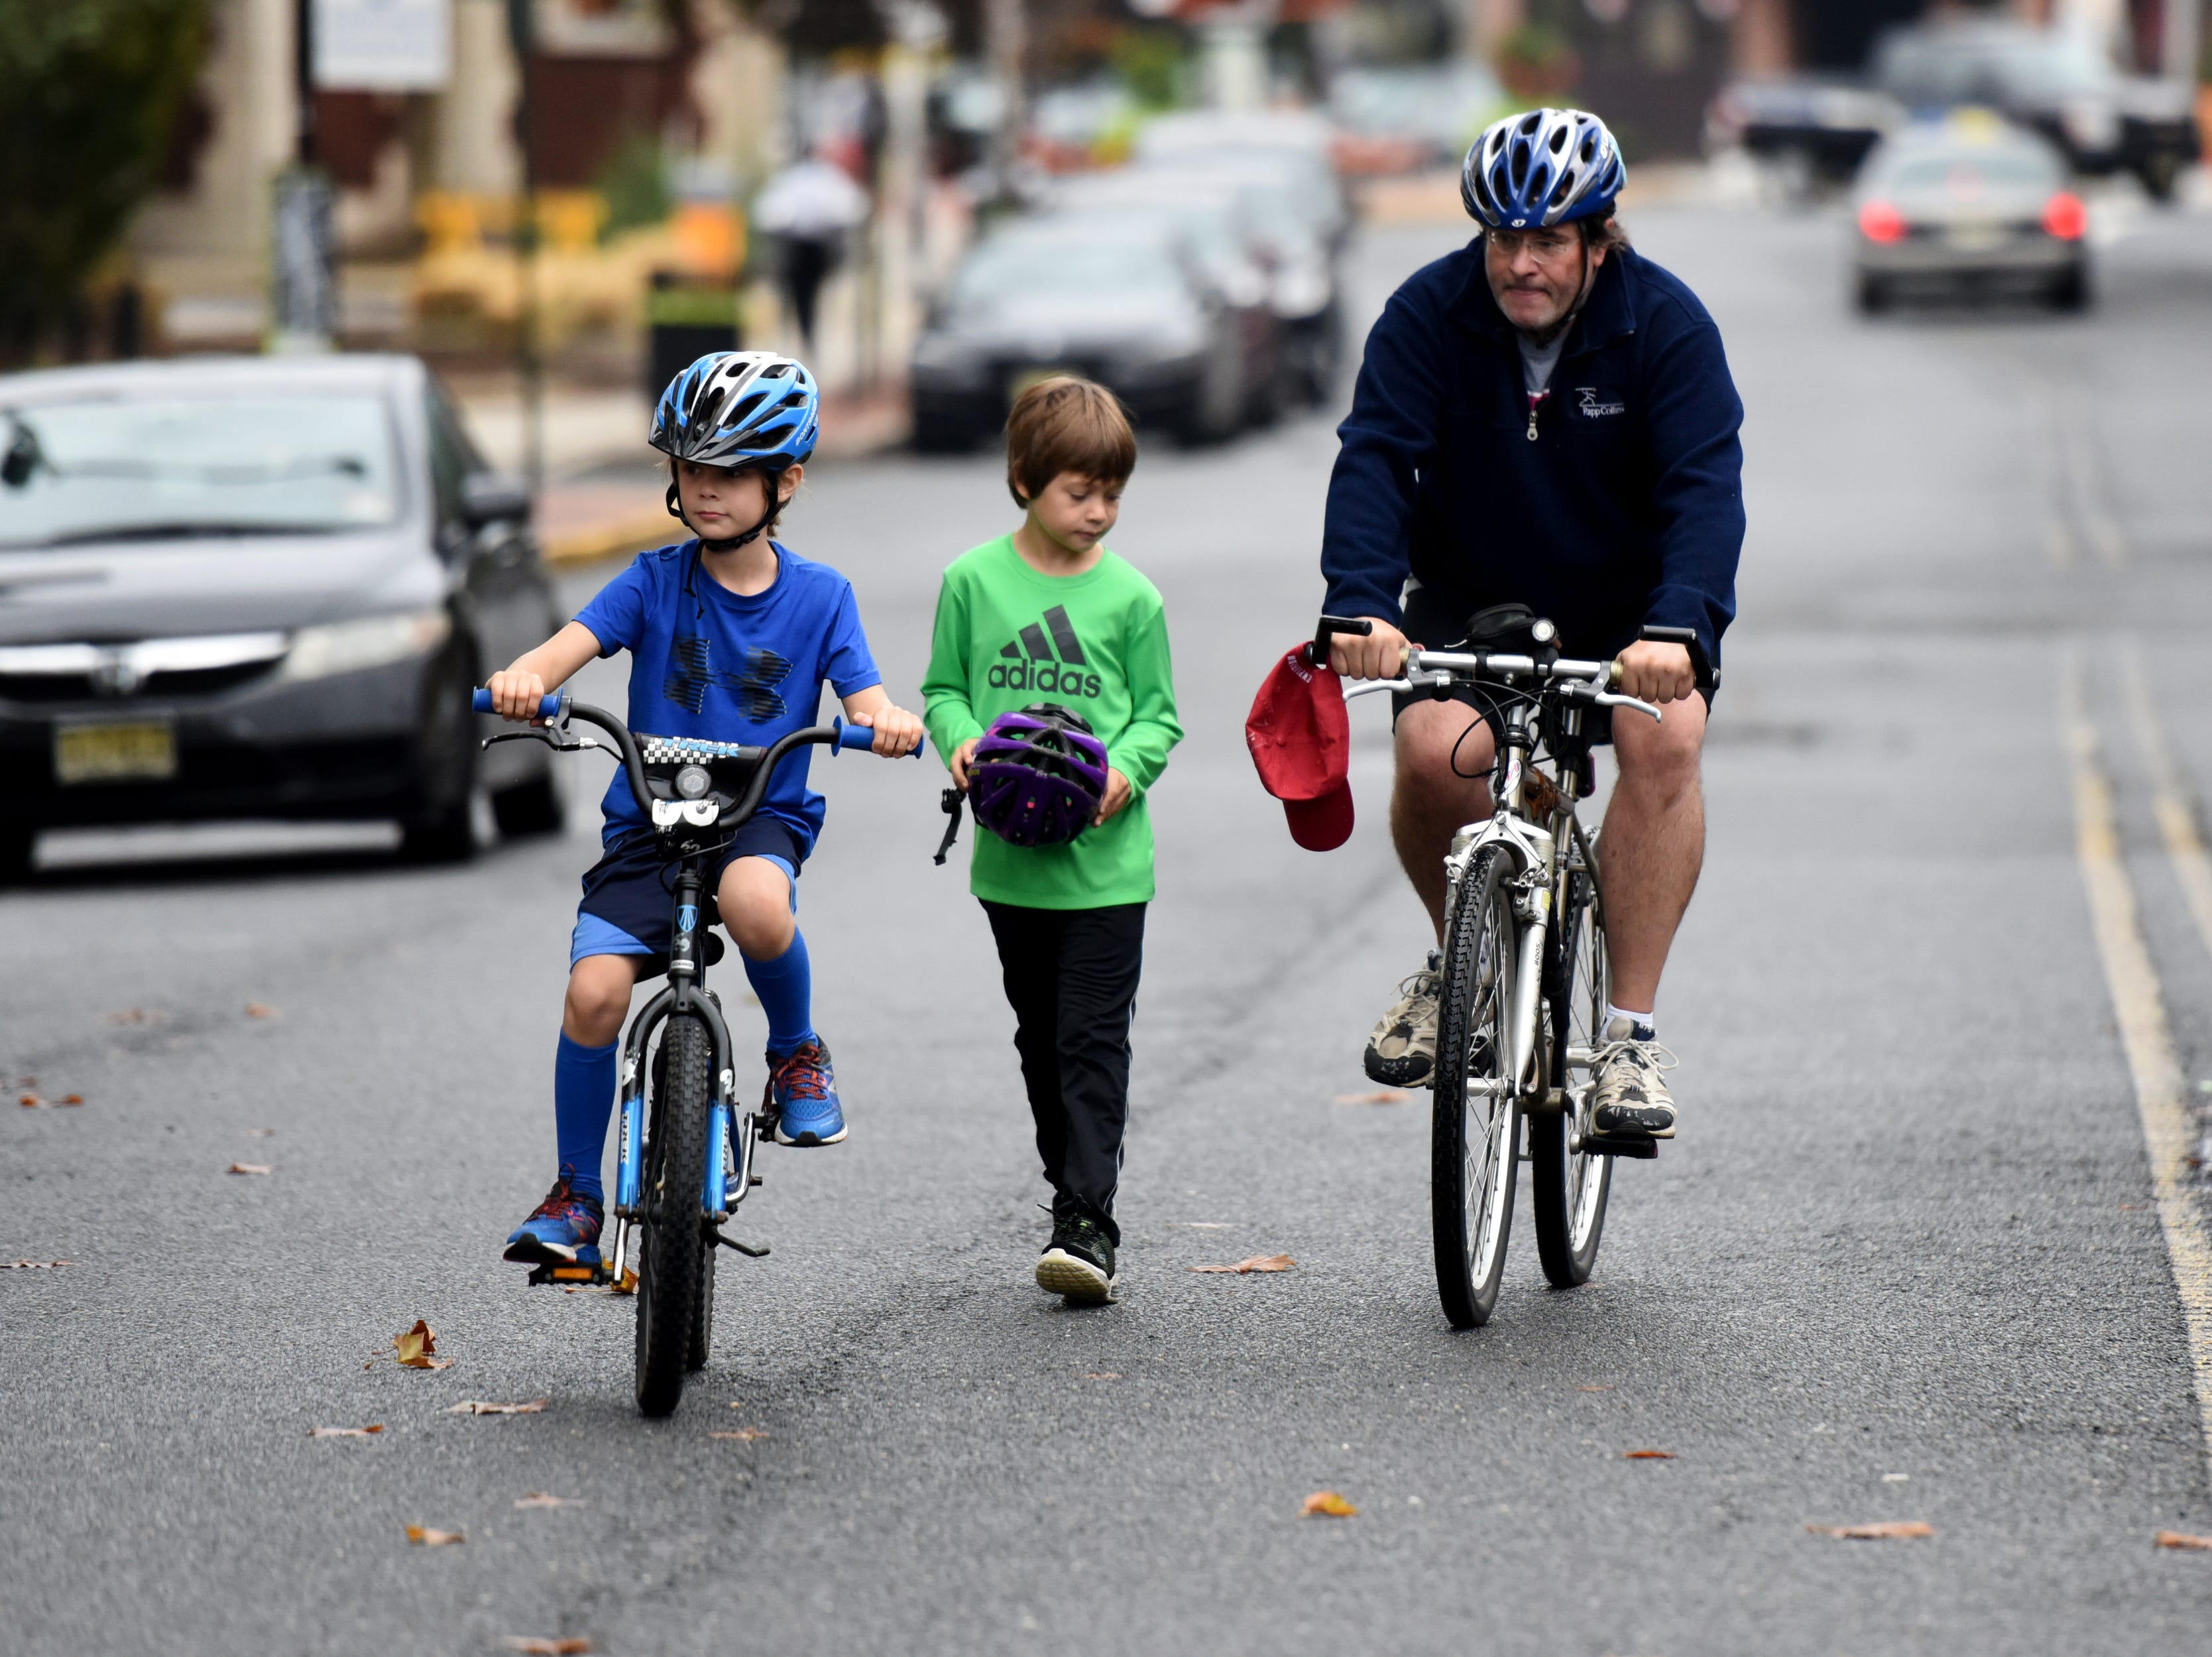 The Tour de Montclair a family-friendly bike ride with 6- and 12- mile options was held on Sunday, October 7, 2018. Cyclists leave for the ride next to Crane Park. Twins Charles and Julian Simpson 7 and their father George Simpson of Montclair arrive outside of Crane Park for the ride.